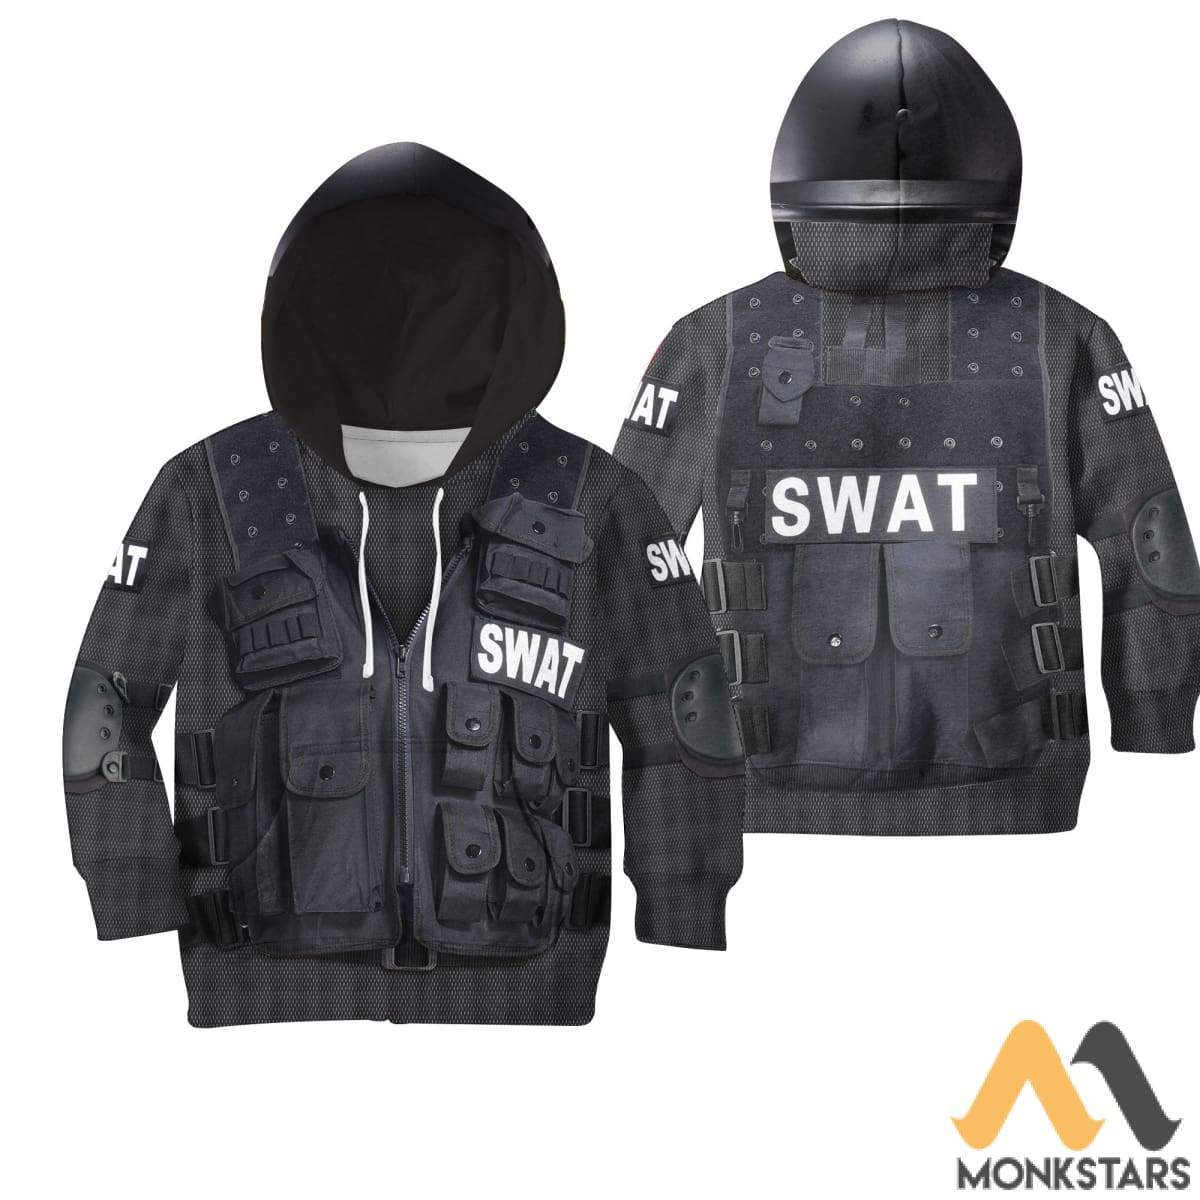 Swat 3D All Over Printed Shirts For Kids Normal Hoodie / Toddler 2T Kid Clothes